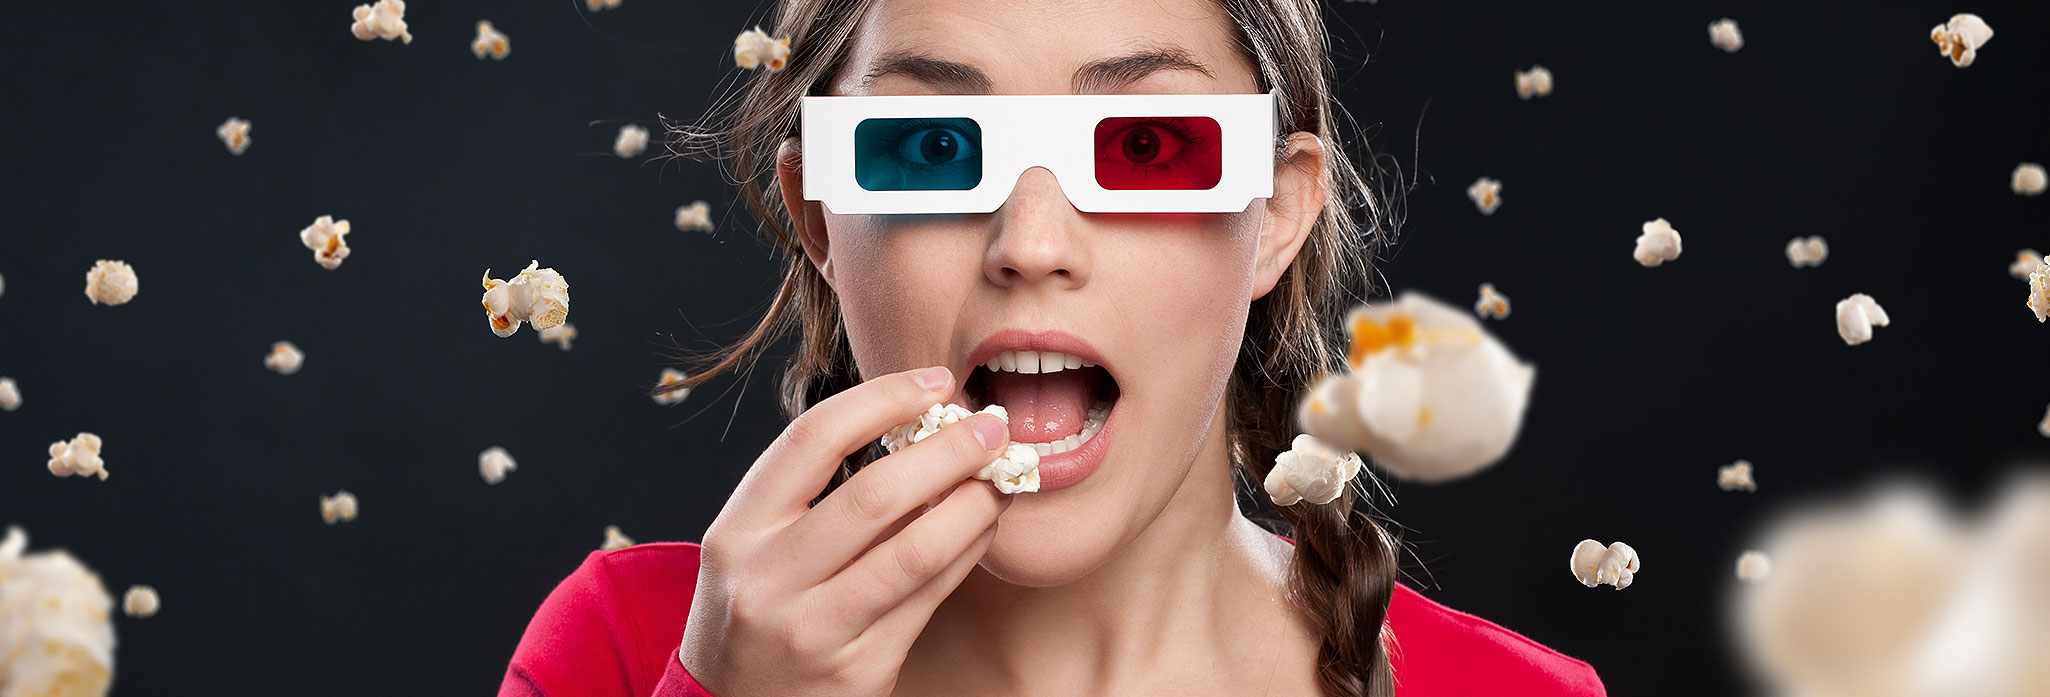 3DMoviegoer Woman Eating Popcorn